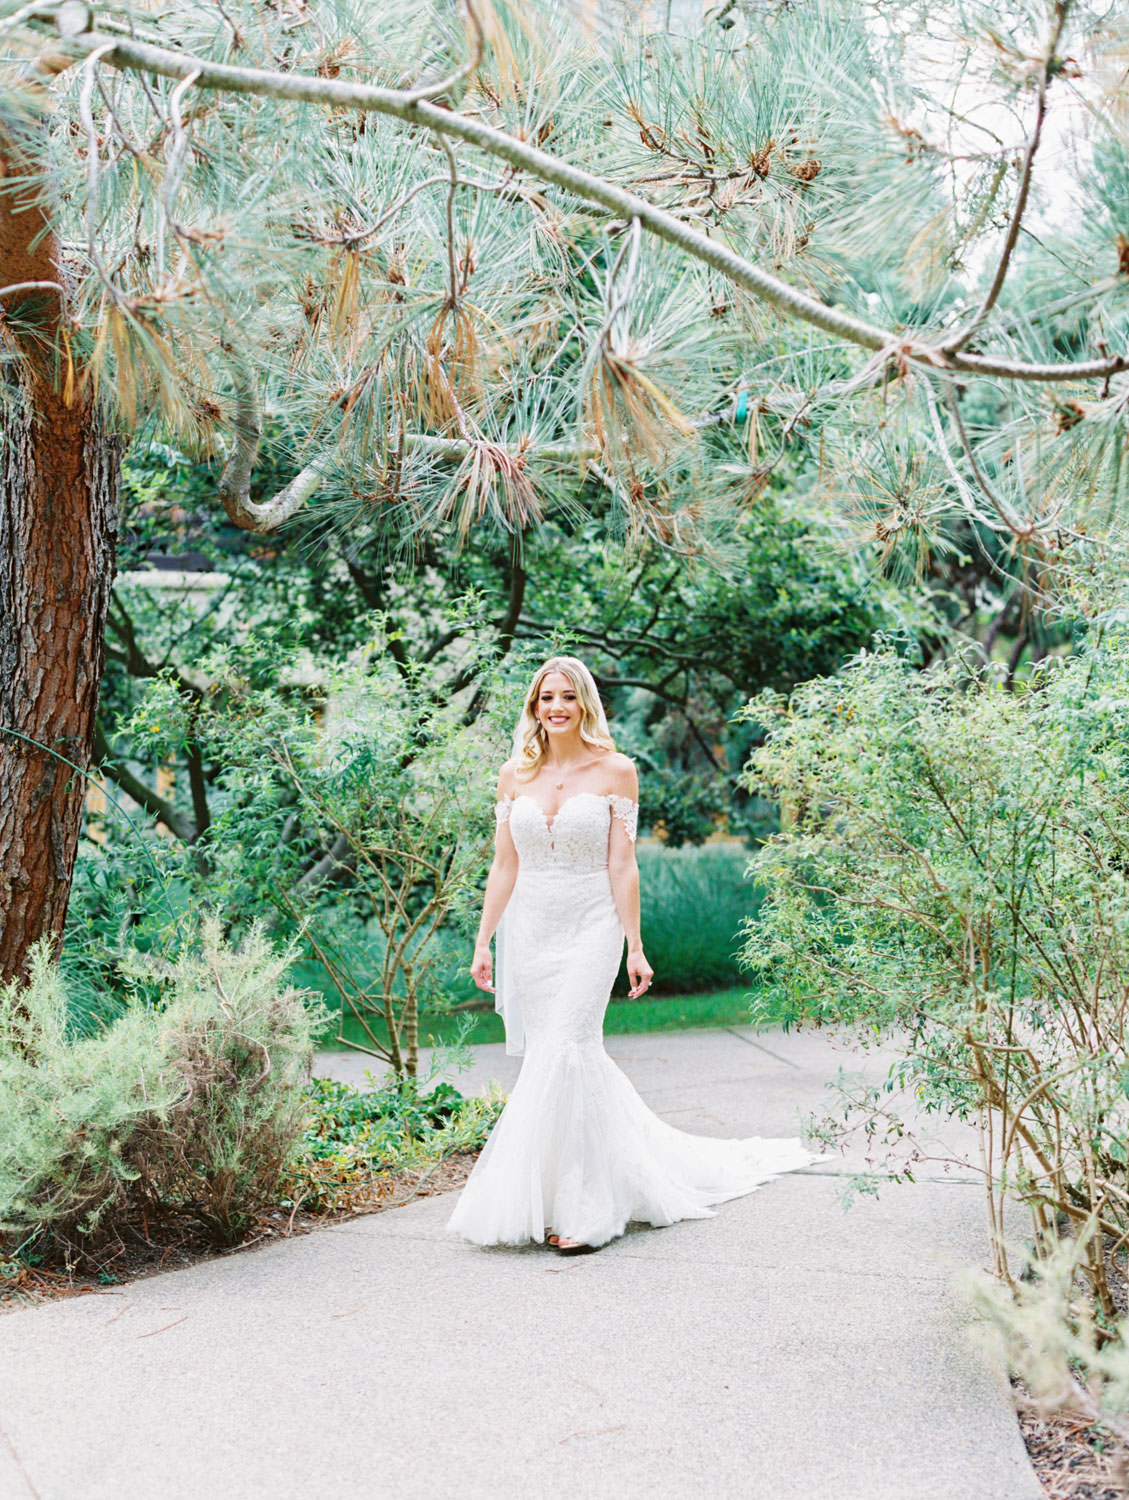 Bride in Pronovias off shoulder lace gown walking toward groom for first look, Lodge at Torrey Pines wedding, film photography by Cavin Elizabeth Photography